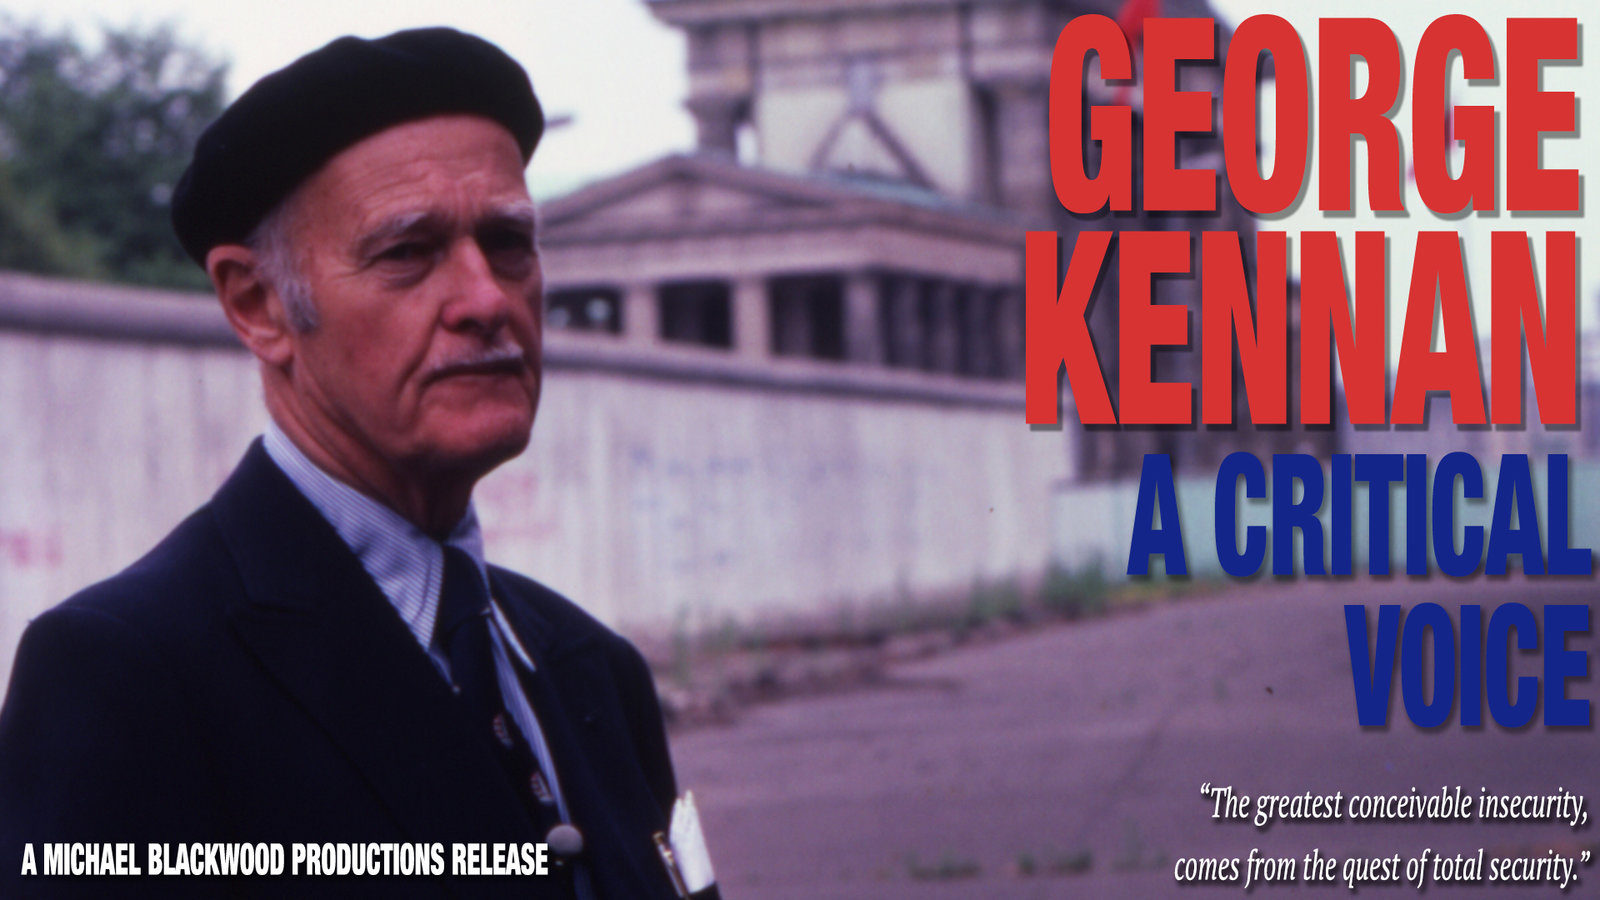 George Kennan: A Critical Voice - A Diplomatic Historian Speaks on Opposing US Involvement in Developing Nuclear Arms